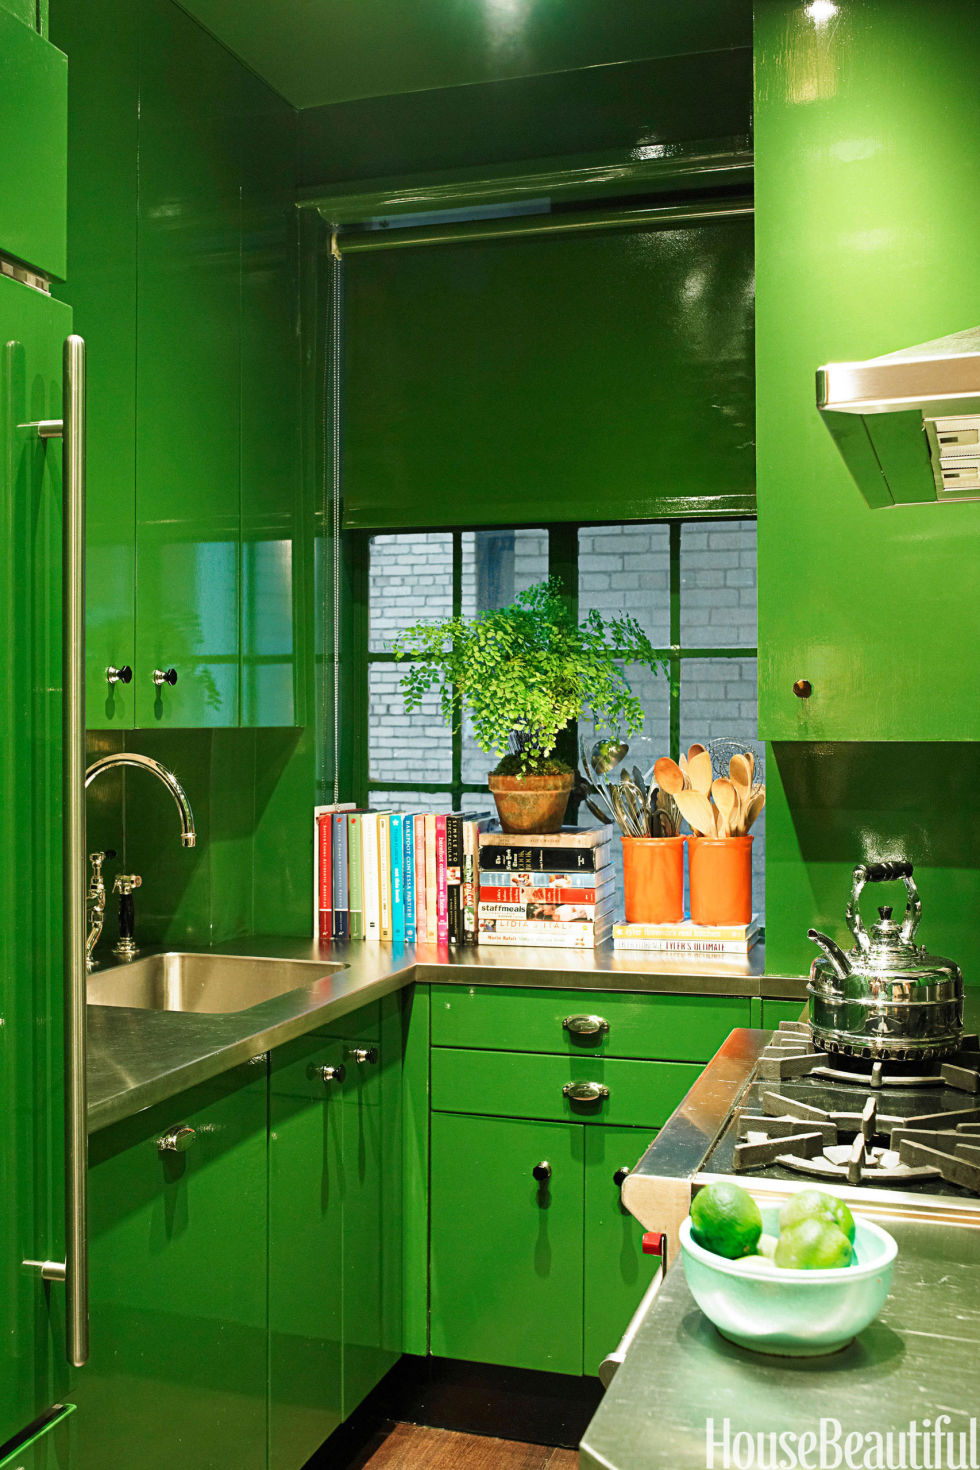 Kitchen Room Interior 25 Best Small Kitchen Design Ideas Decorating Solutions For